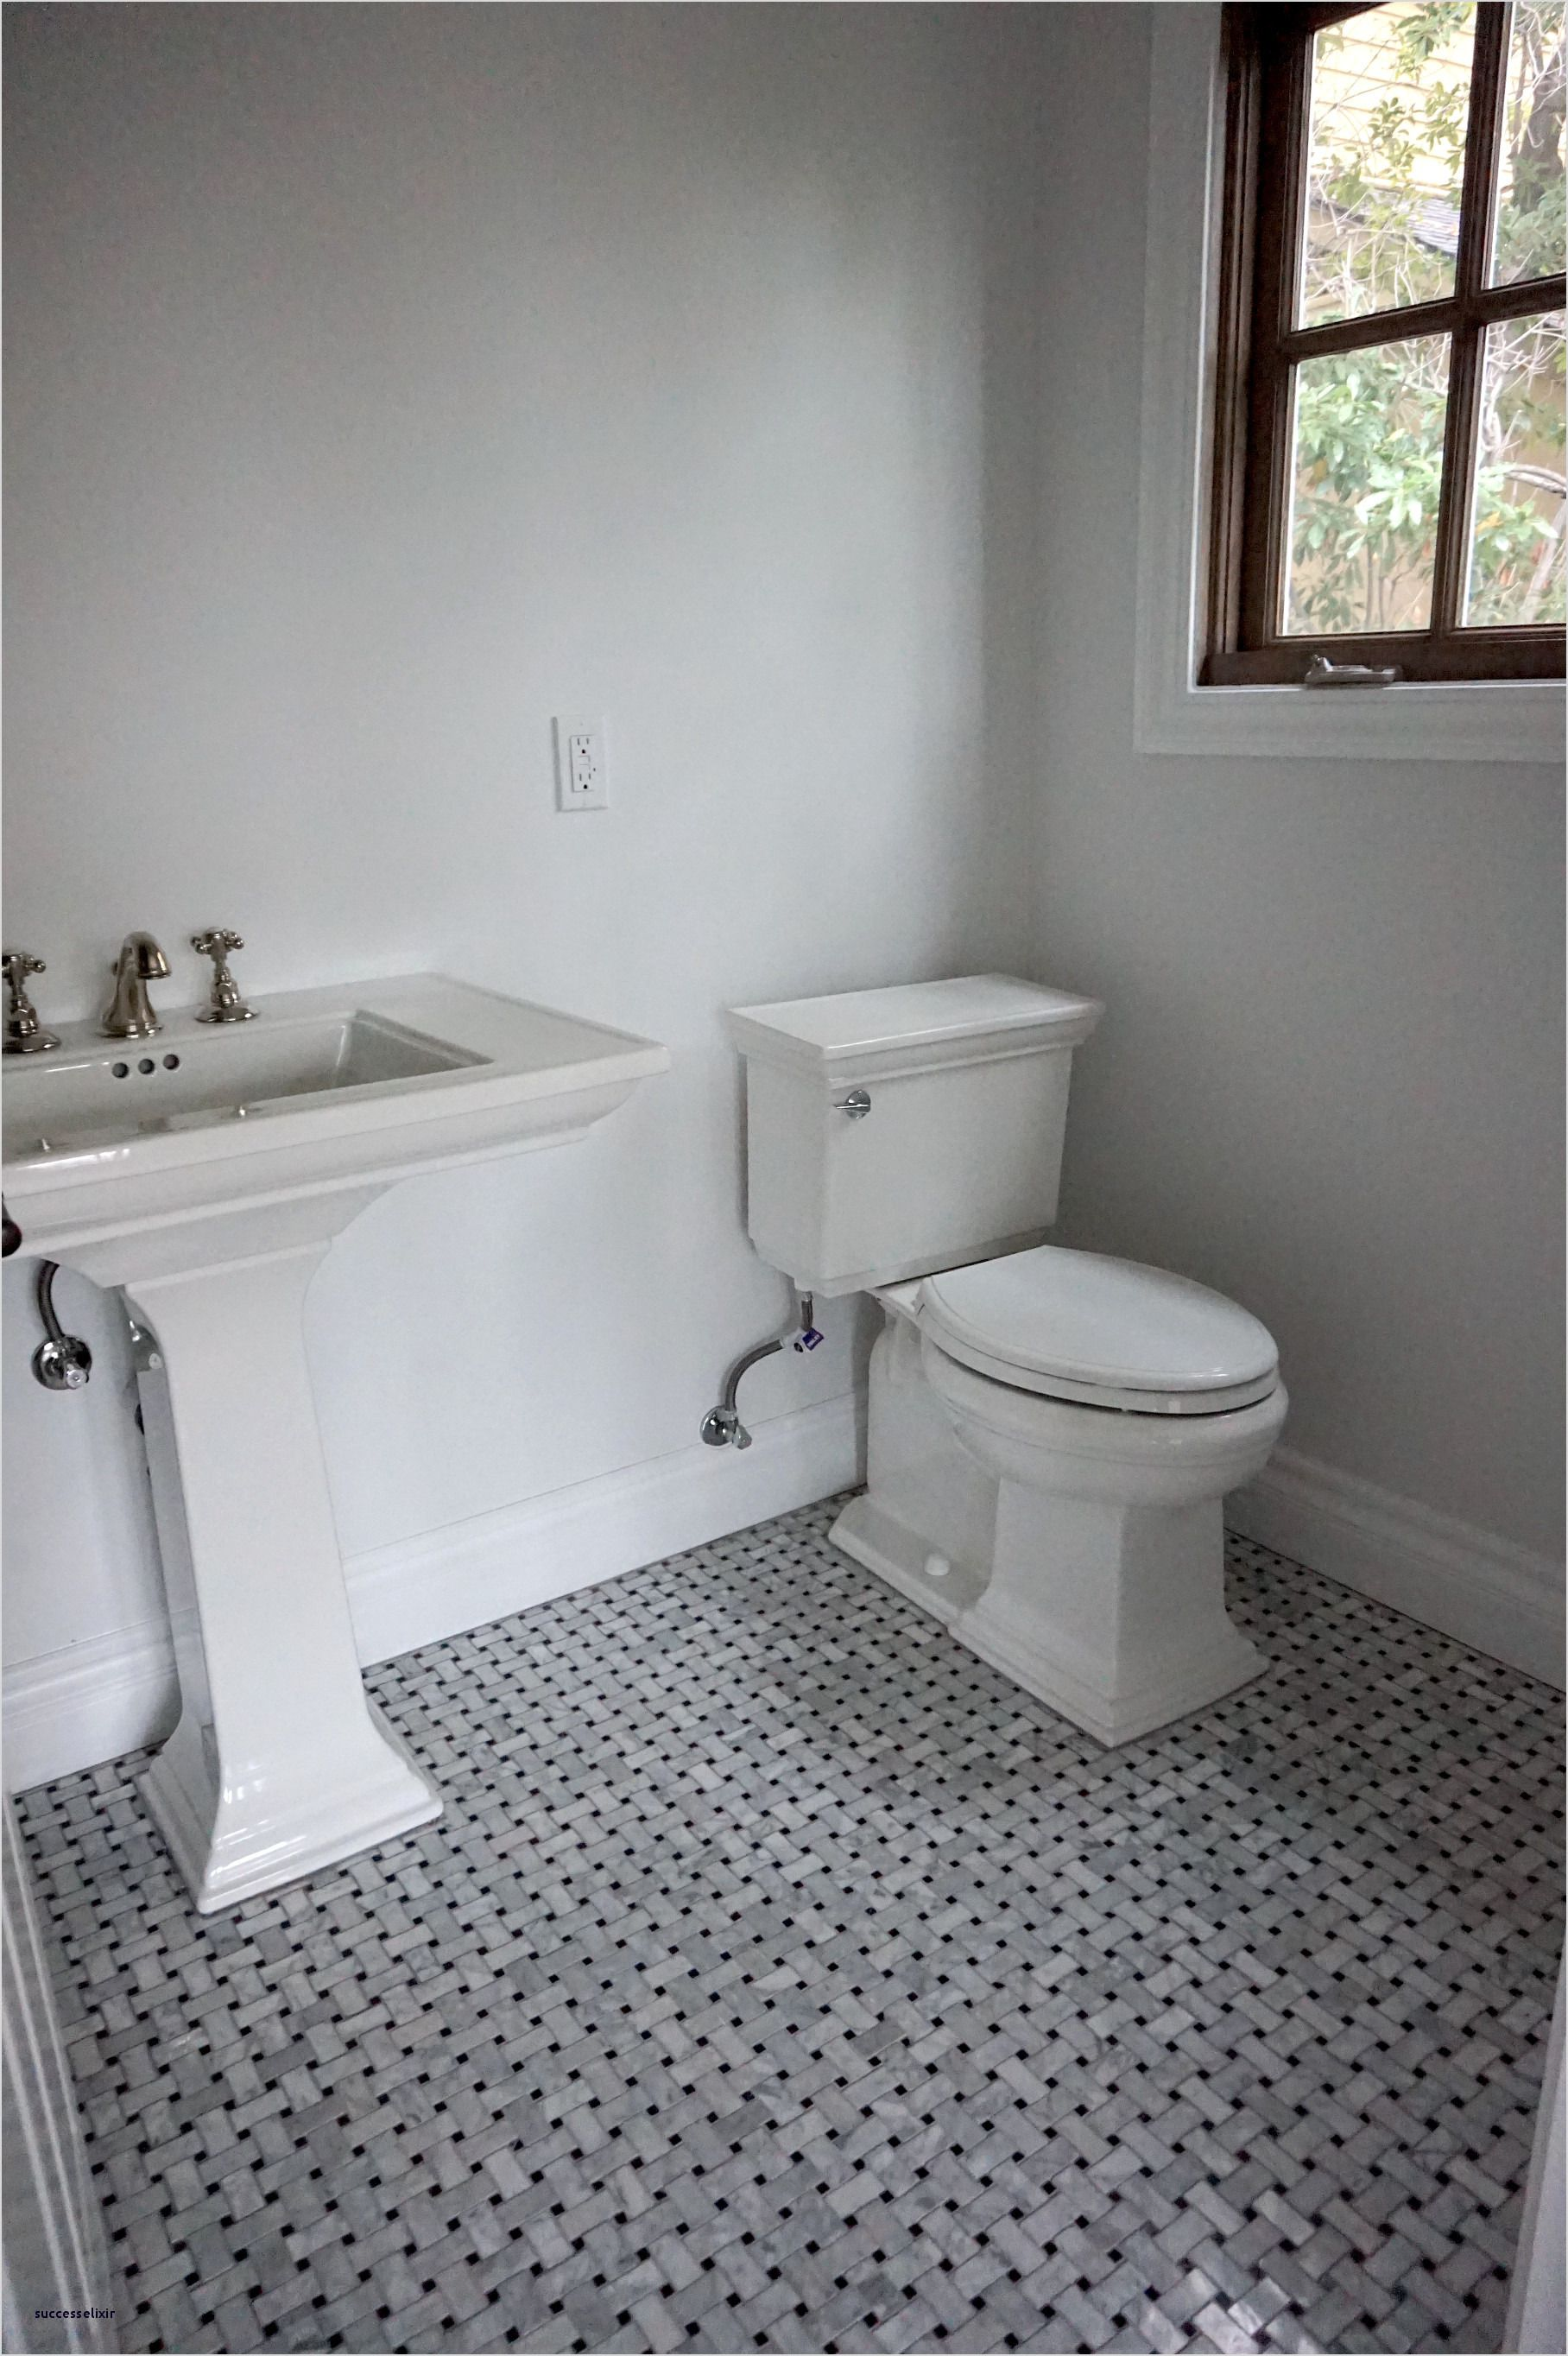 Small Bathroom Makeover Ideas Check More At Http Www Arch20 Club 2017 04 07 Small Bathroom Compact Bathroom Design Bathroom Cost Small Bathroom Remodel Cost